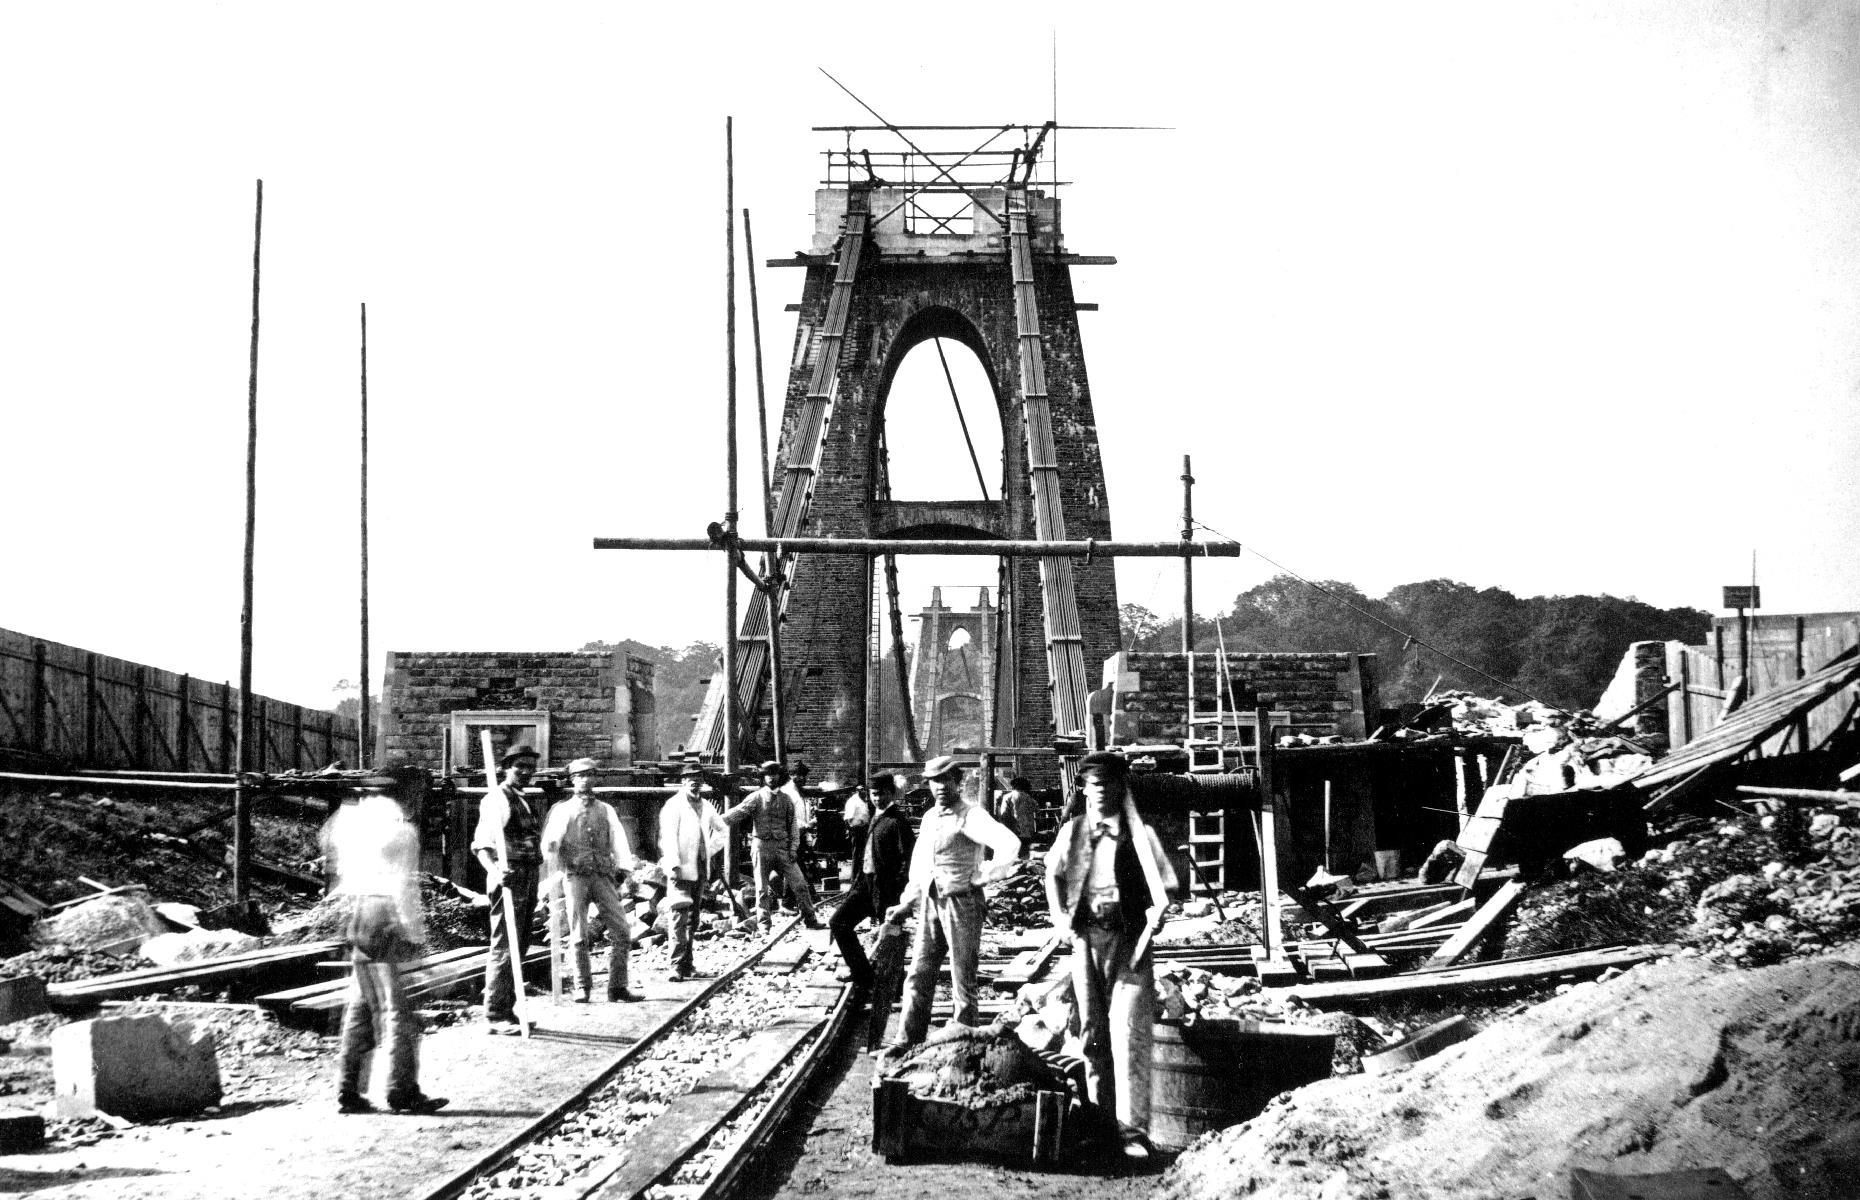 Slide 39 of 41: Work on the bridge – to a design by civil engineer Isambard Kingdom Brunel – wouldn't begin until 1831, after Vick's original bequest had had some time to accumulate. However, the Bristol riots of 1831 soon caused construction to halt and dwindling funds would see that work remained paused for decades. After Brunel died in 1859, the bridge was completed in part as a tribute to the late engineer, with revised designs by William Henry Barlow and Sir John Hawkshaw. It's captured here under construction in 1864, the same year it was finally finished.